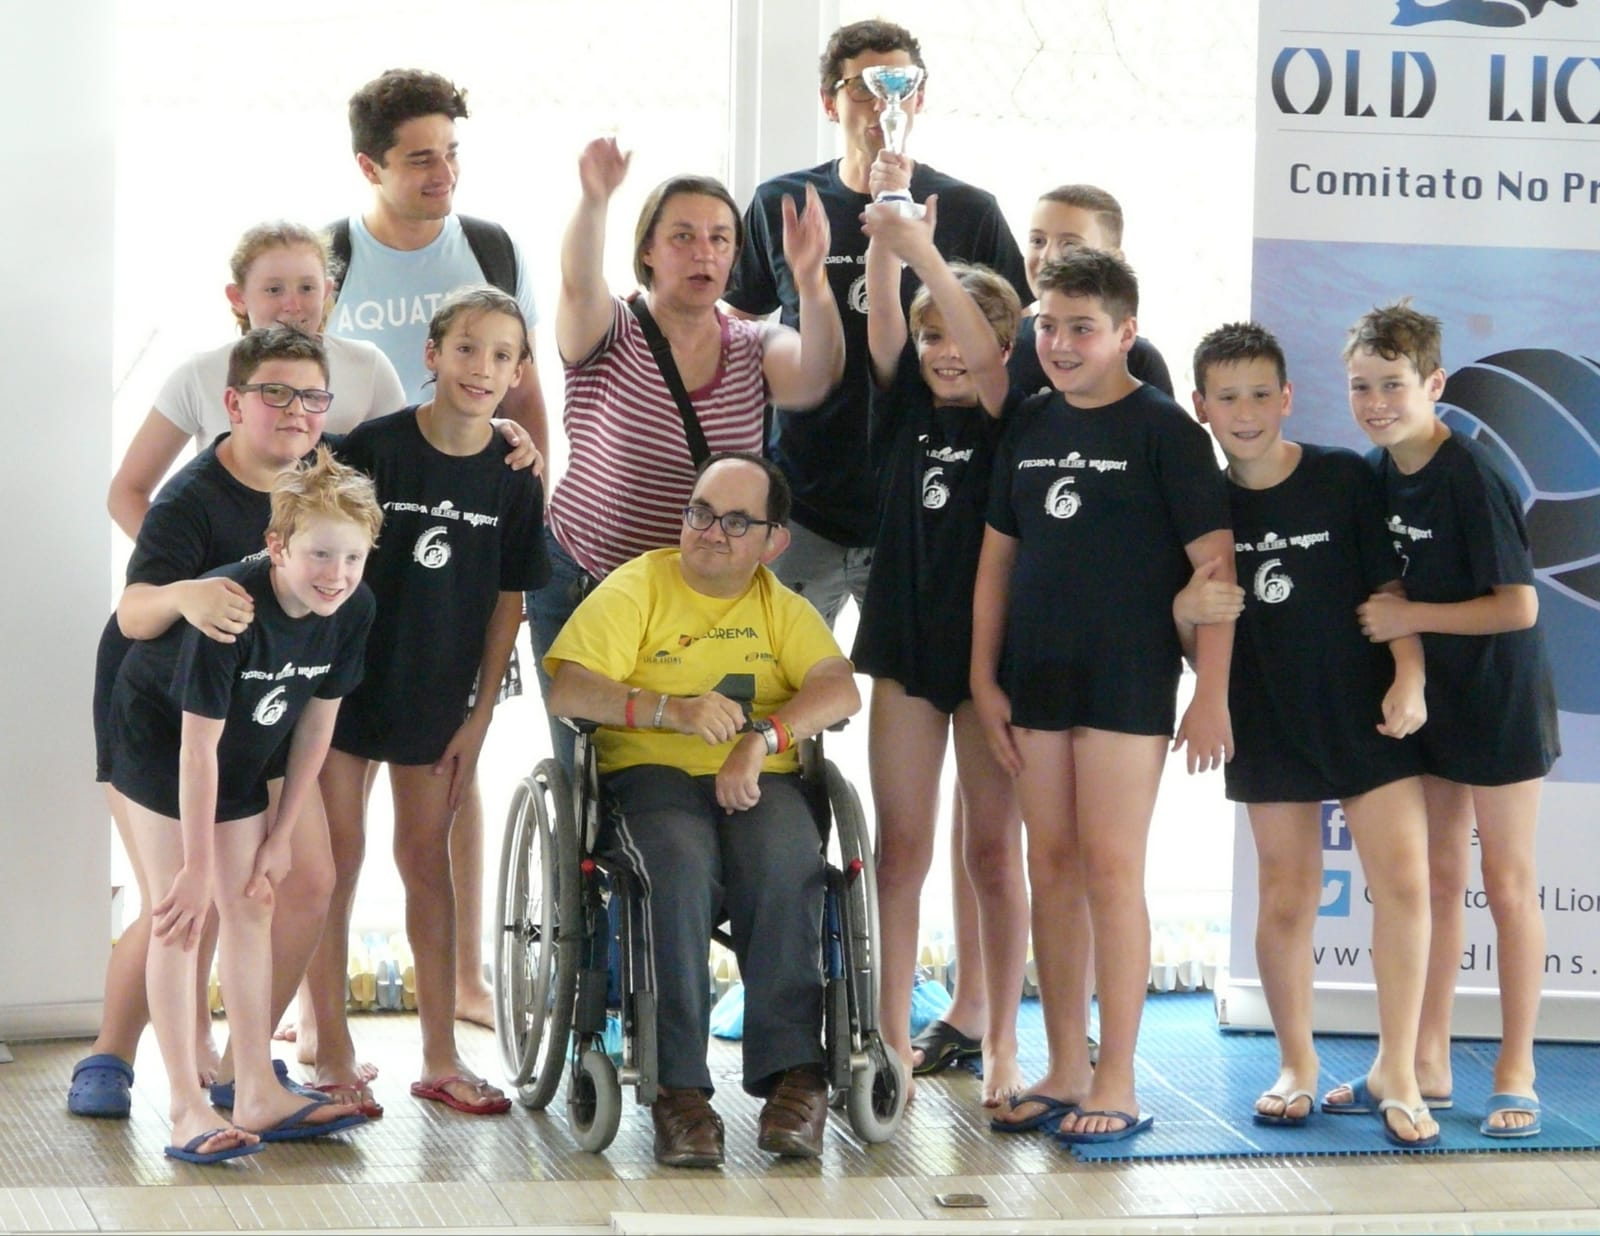 Torneo Old Lions | La Gallery